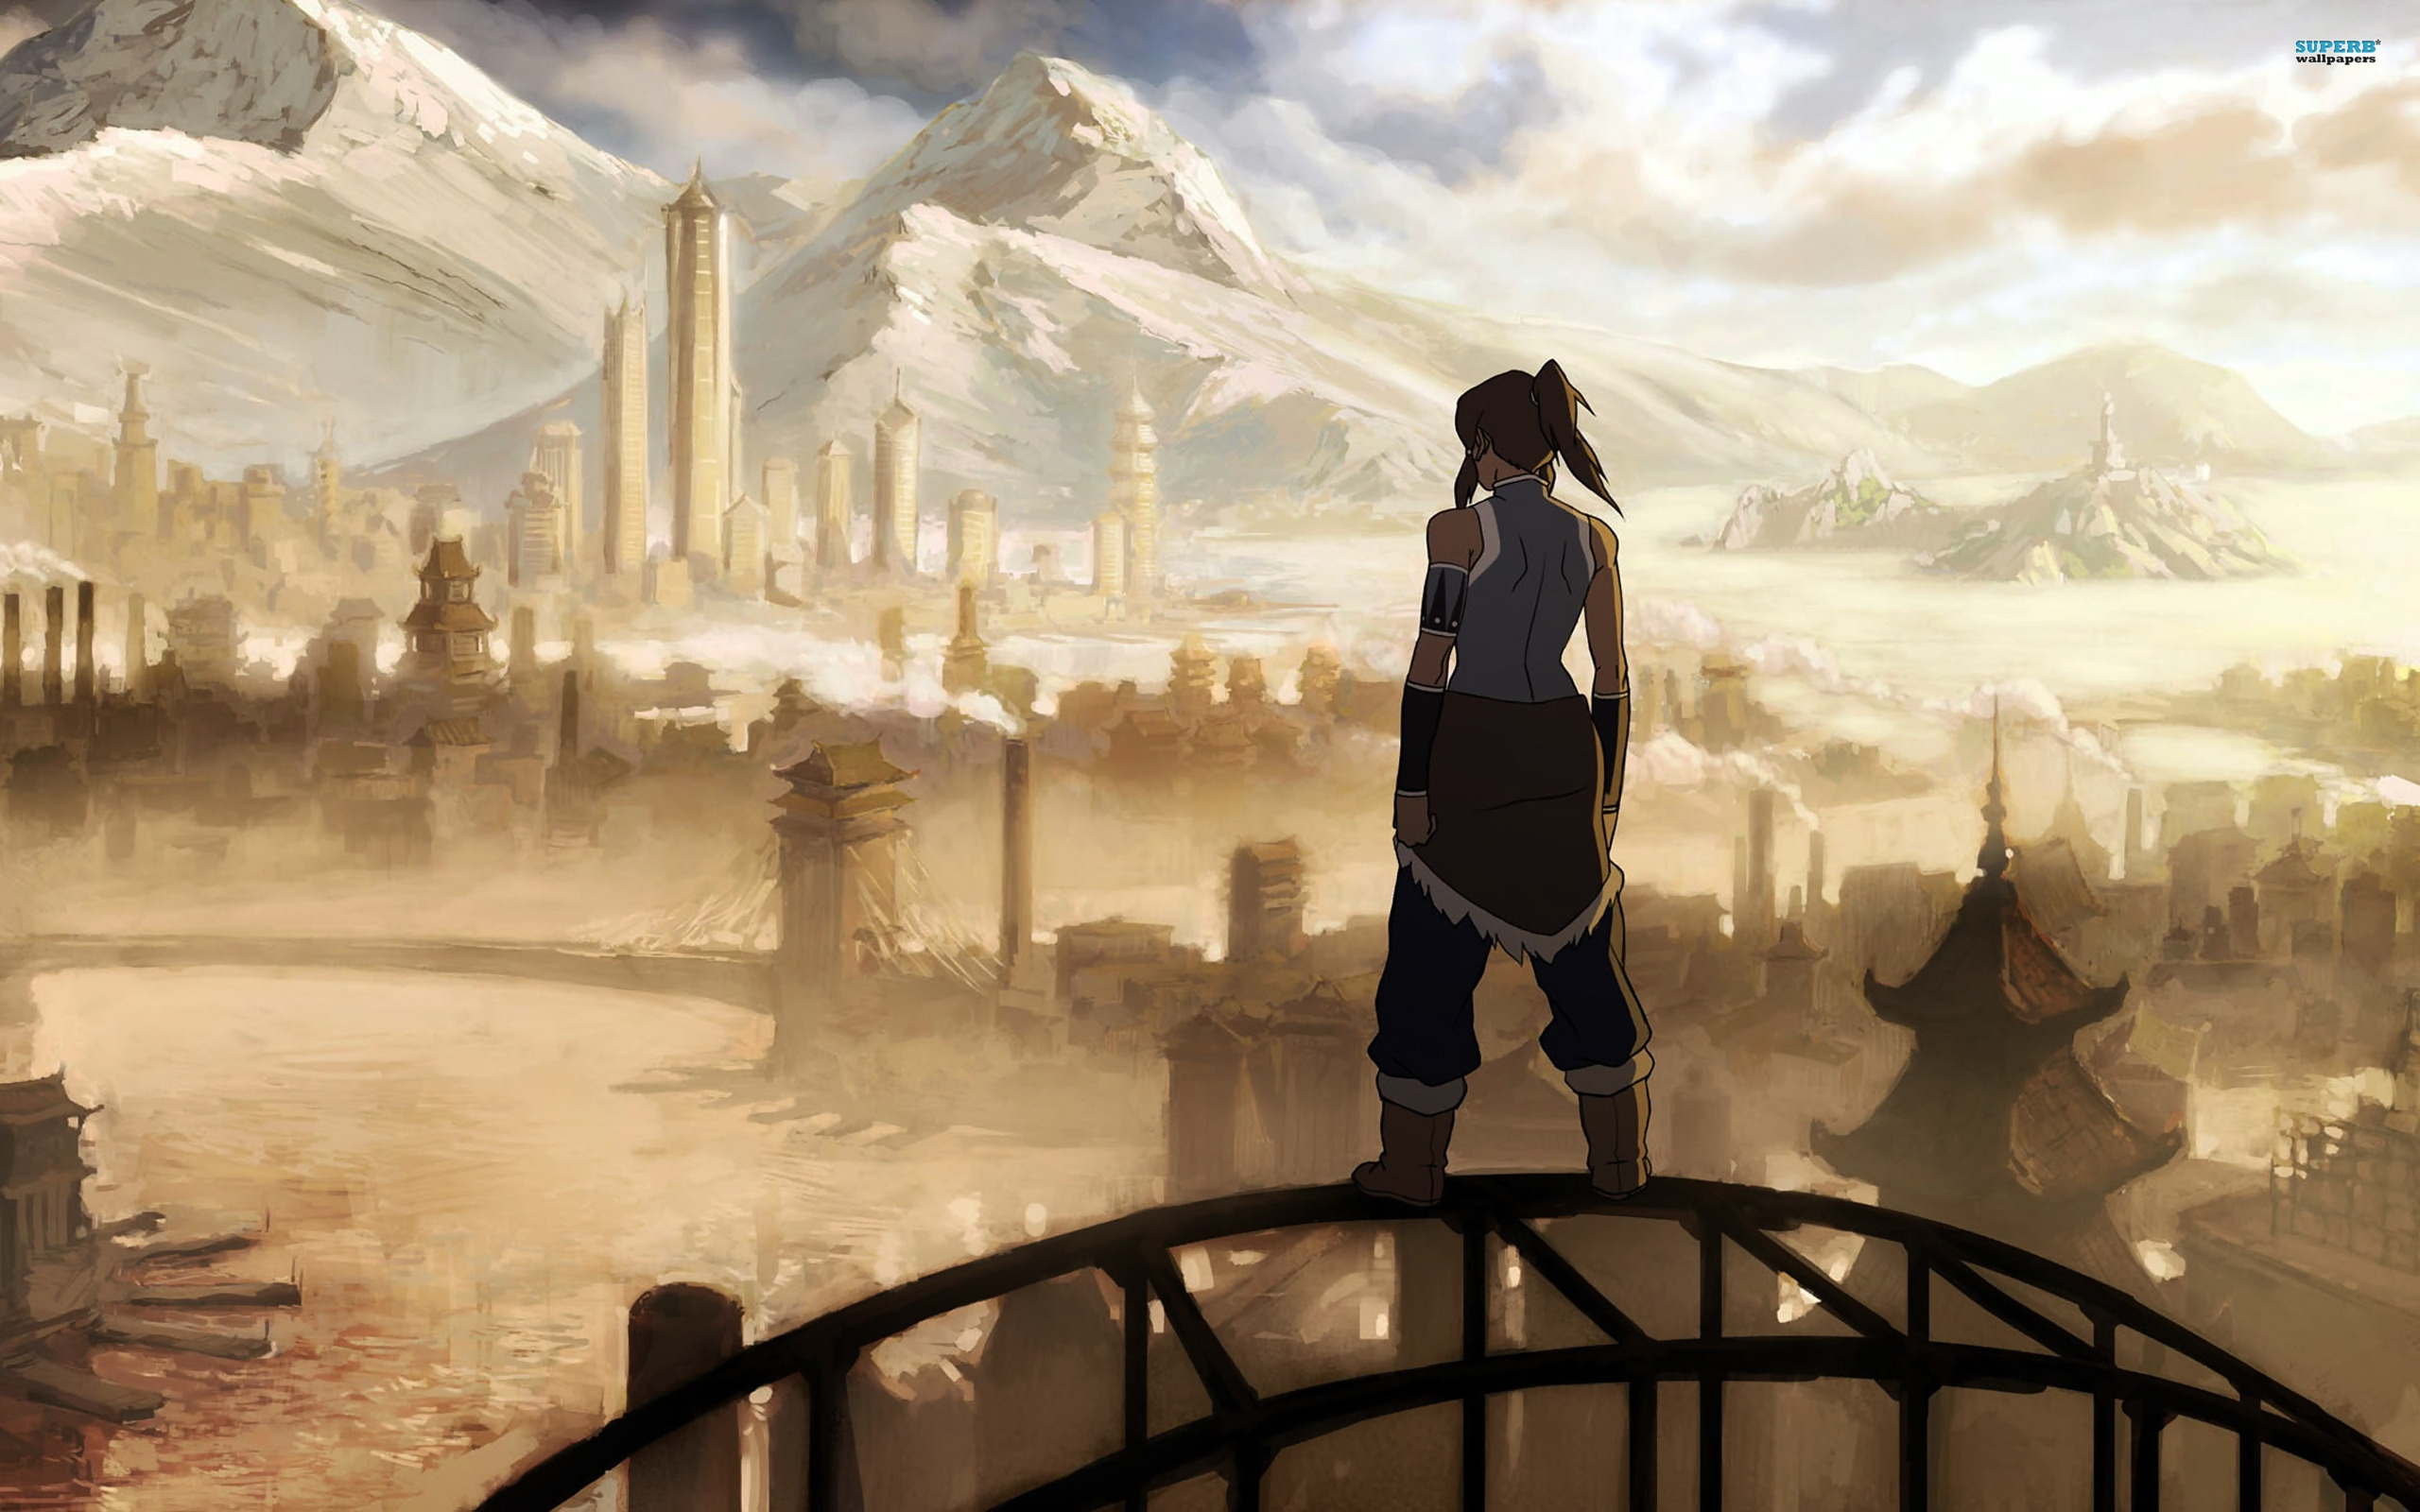 Korra, Avatar: The Legend Of Korra